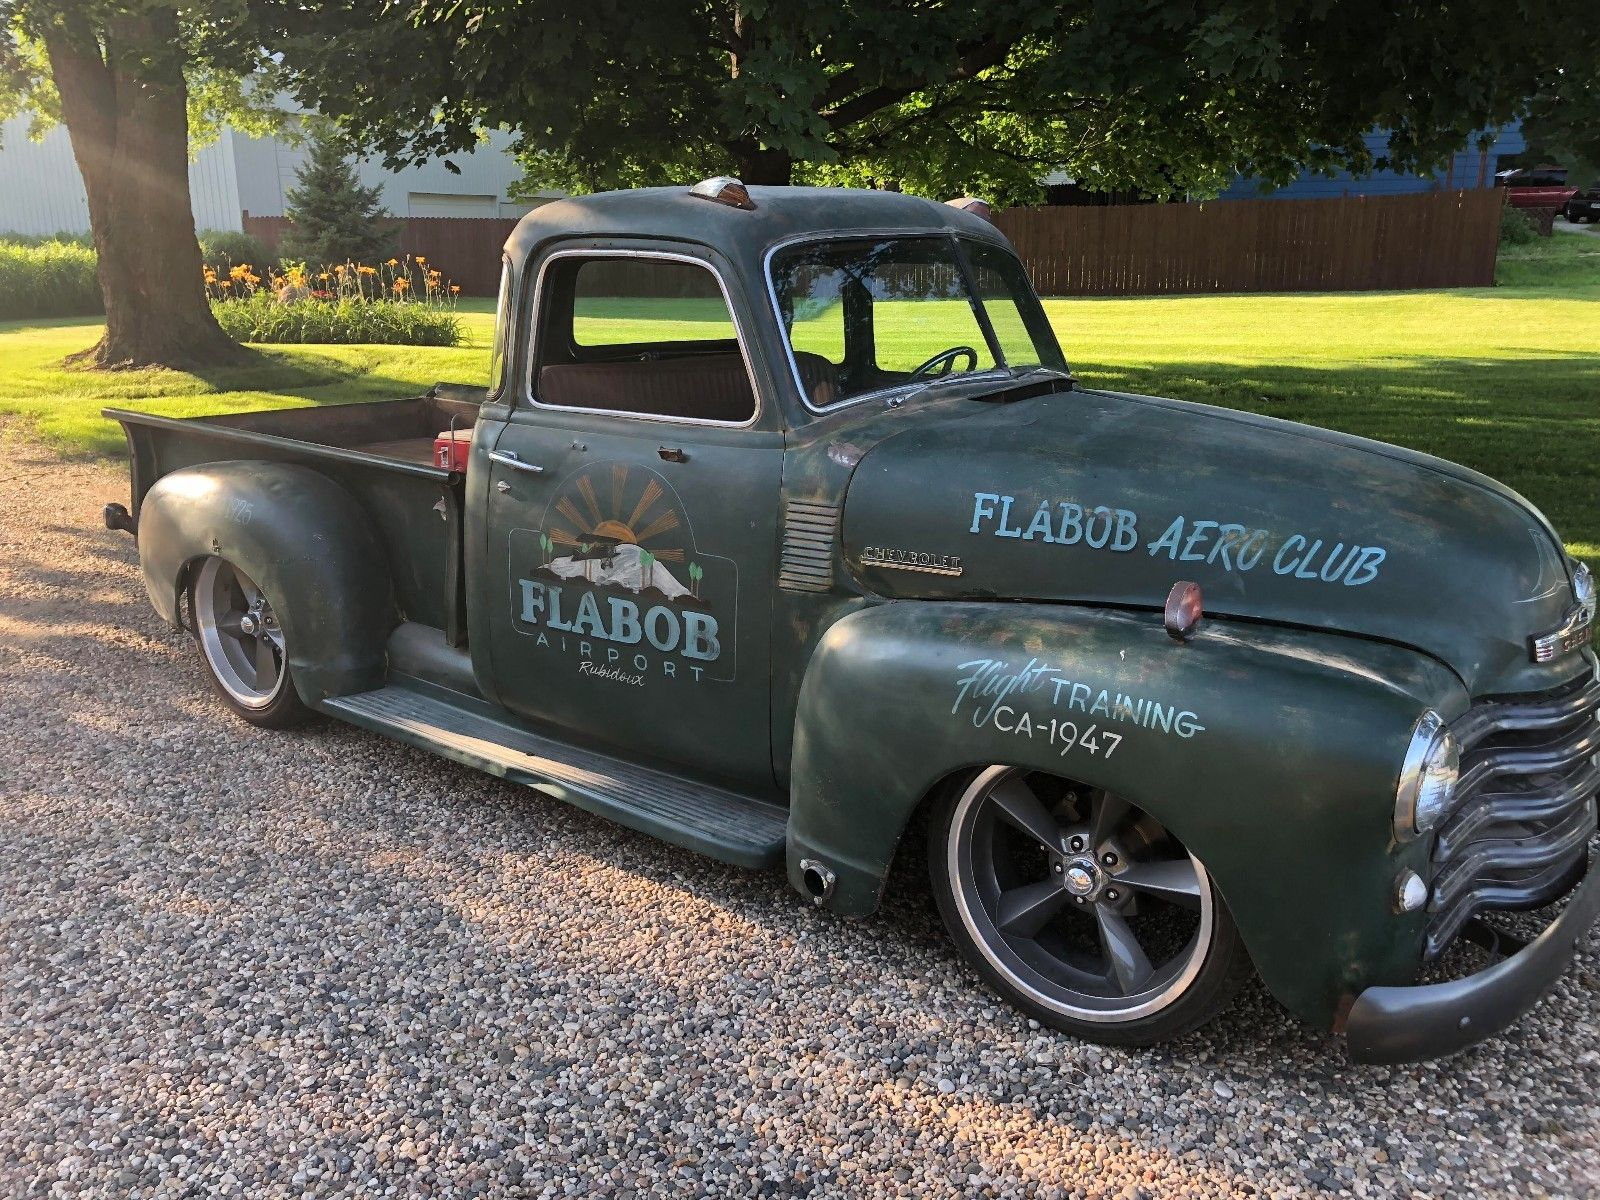 Hot Rod 1947 Chevrolet Pickups Standard Vintage Truck For Sale